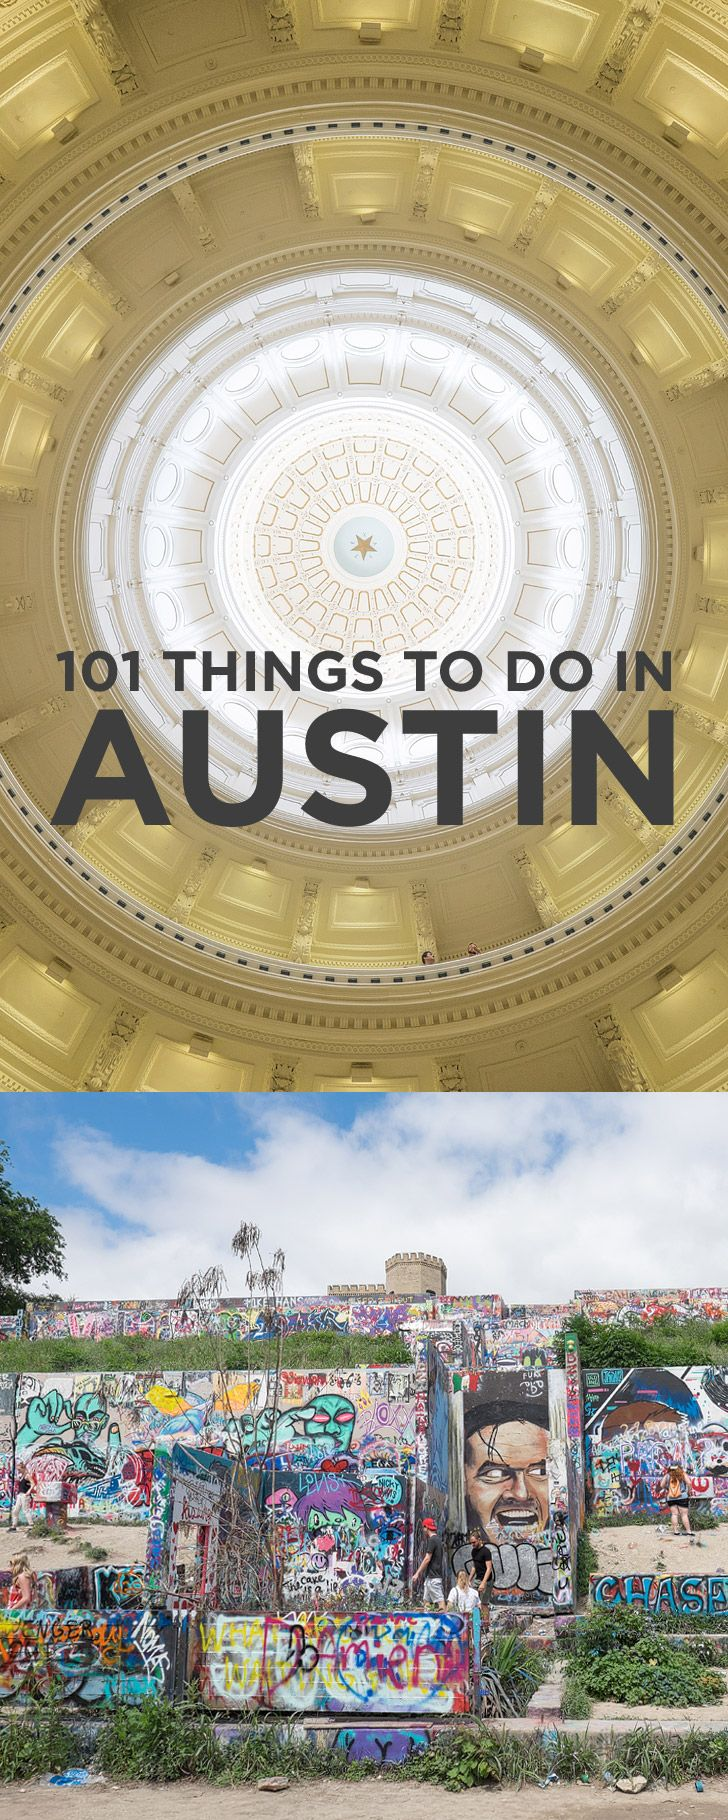 best 25 texas ideas on pinterest austin texas visiting austin texas and time in tx usa. Black Bedroom Furniture Sets. Home Design Ideas